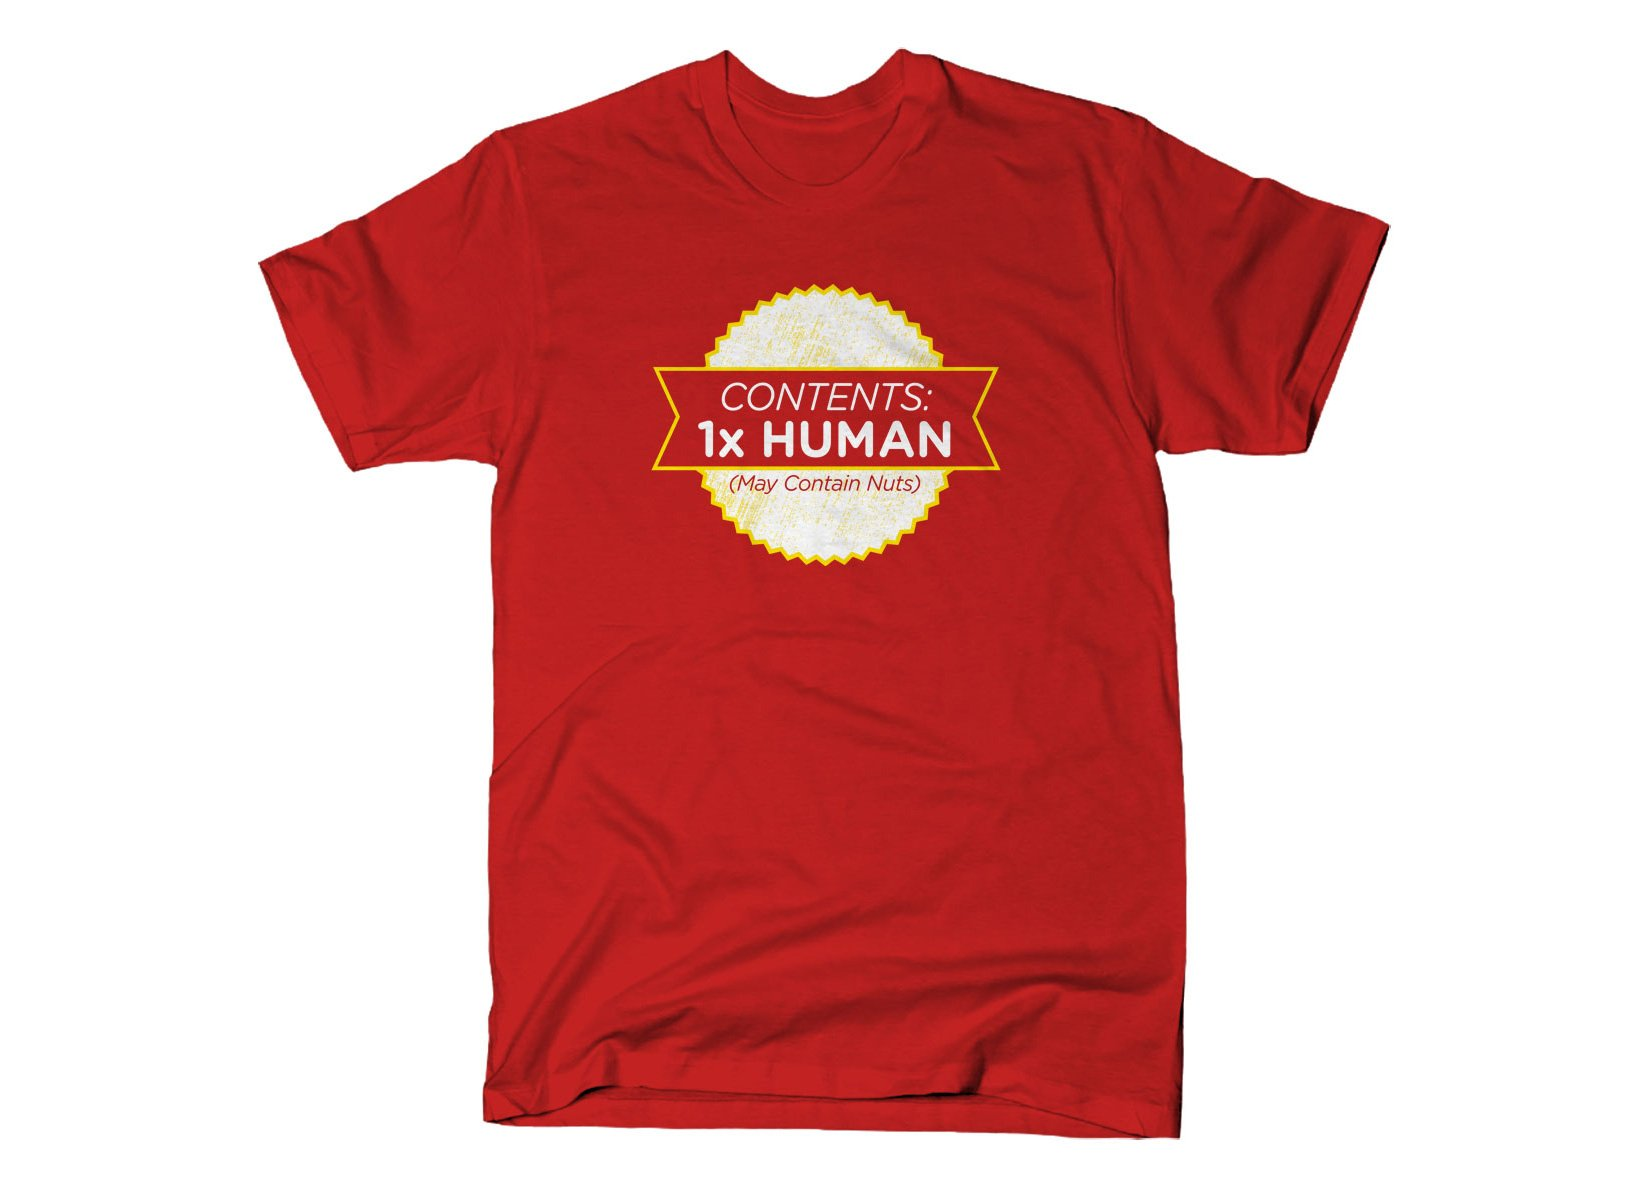 Contents: 1 Human, May Contain Nuts on Mens T-Shirt